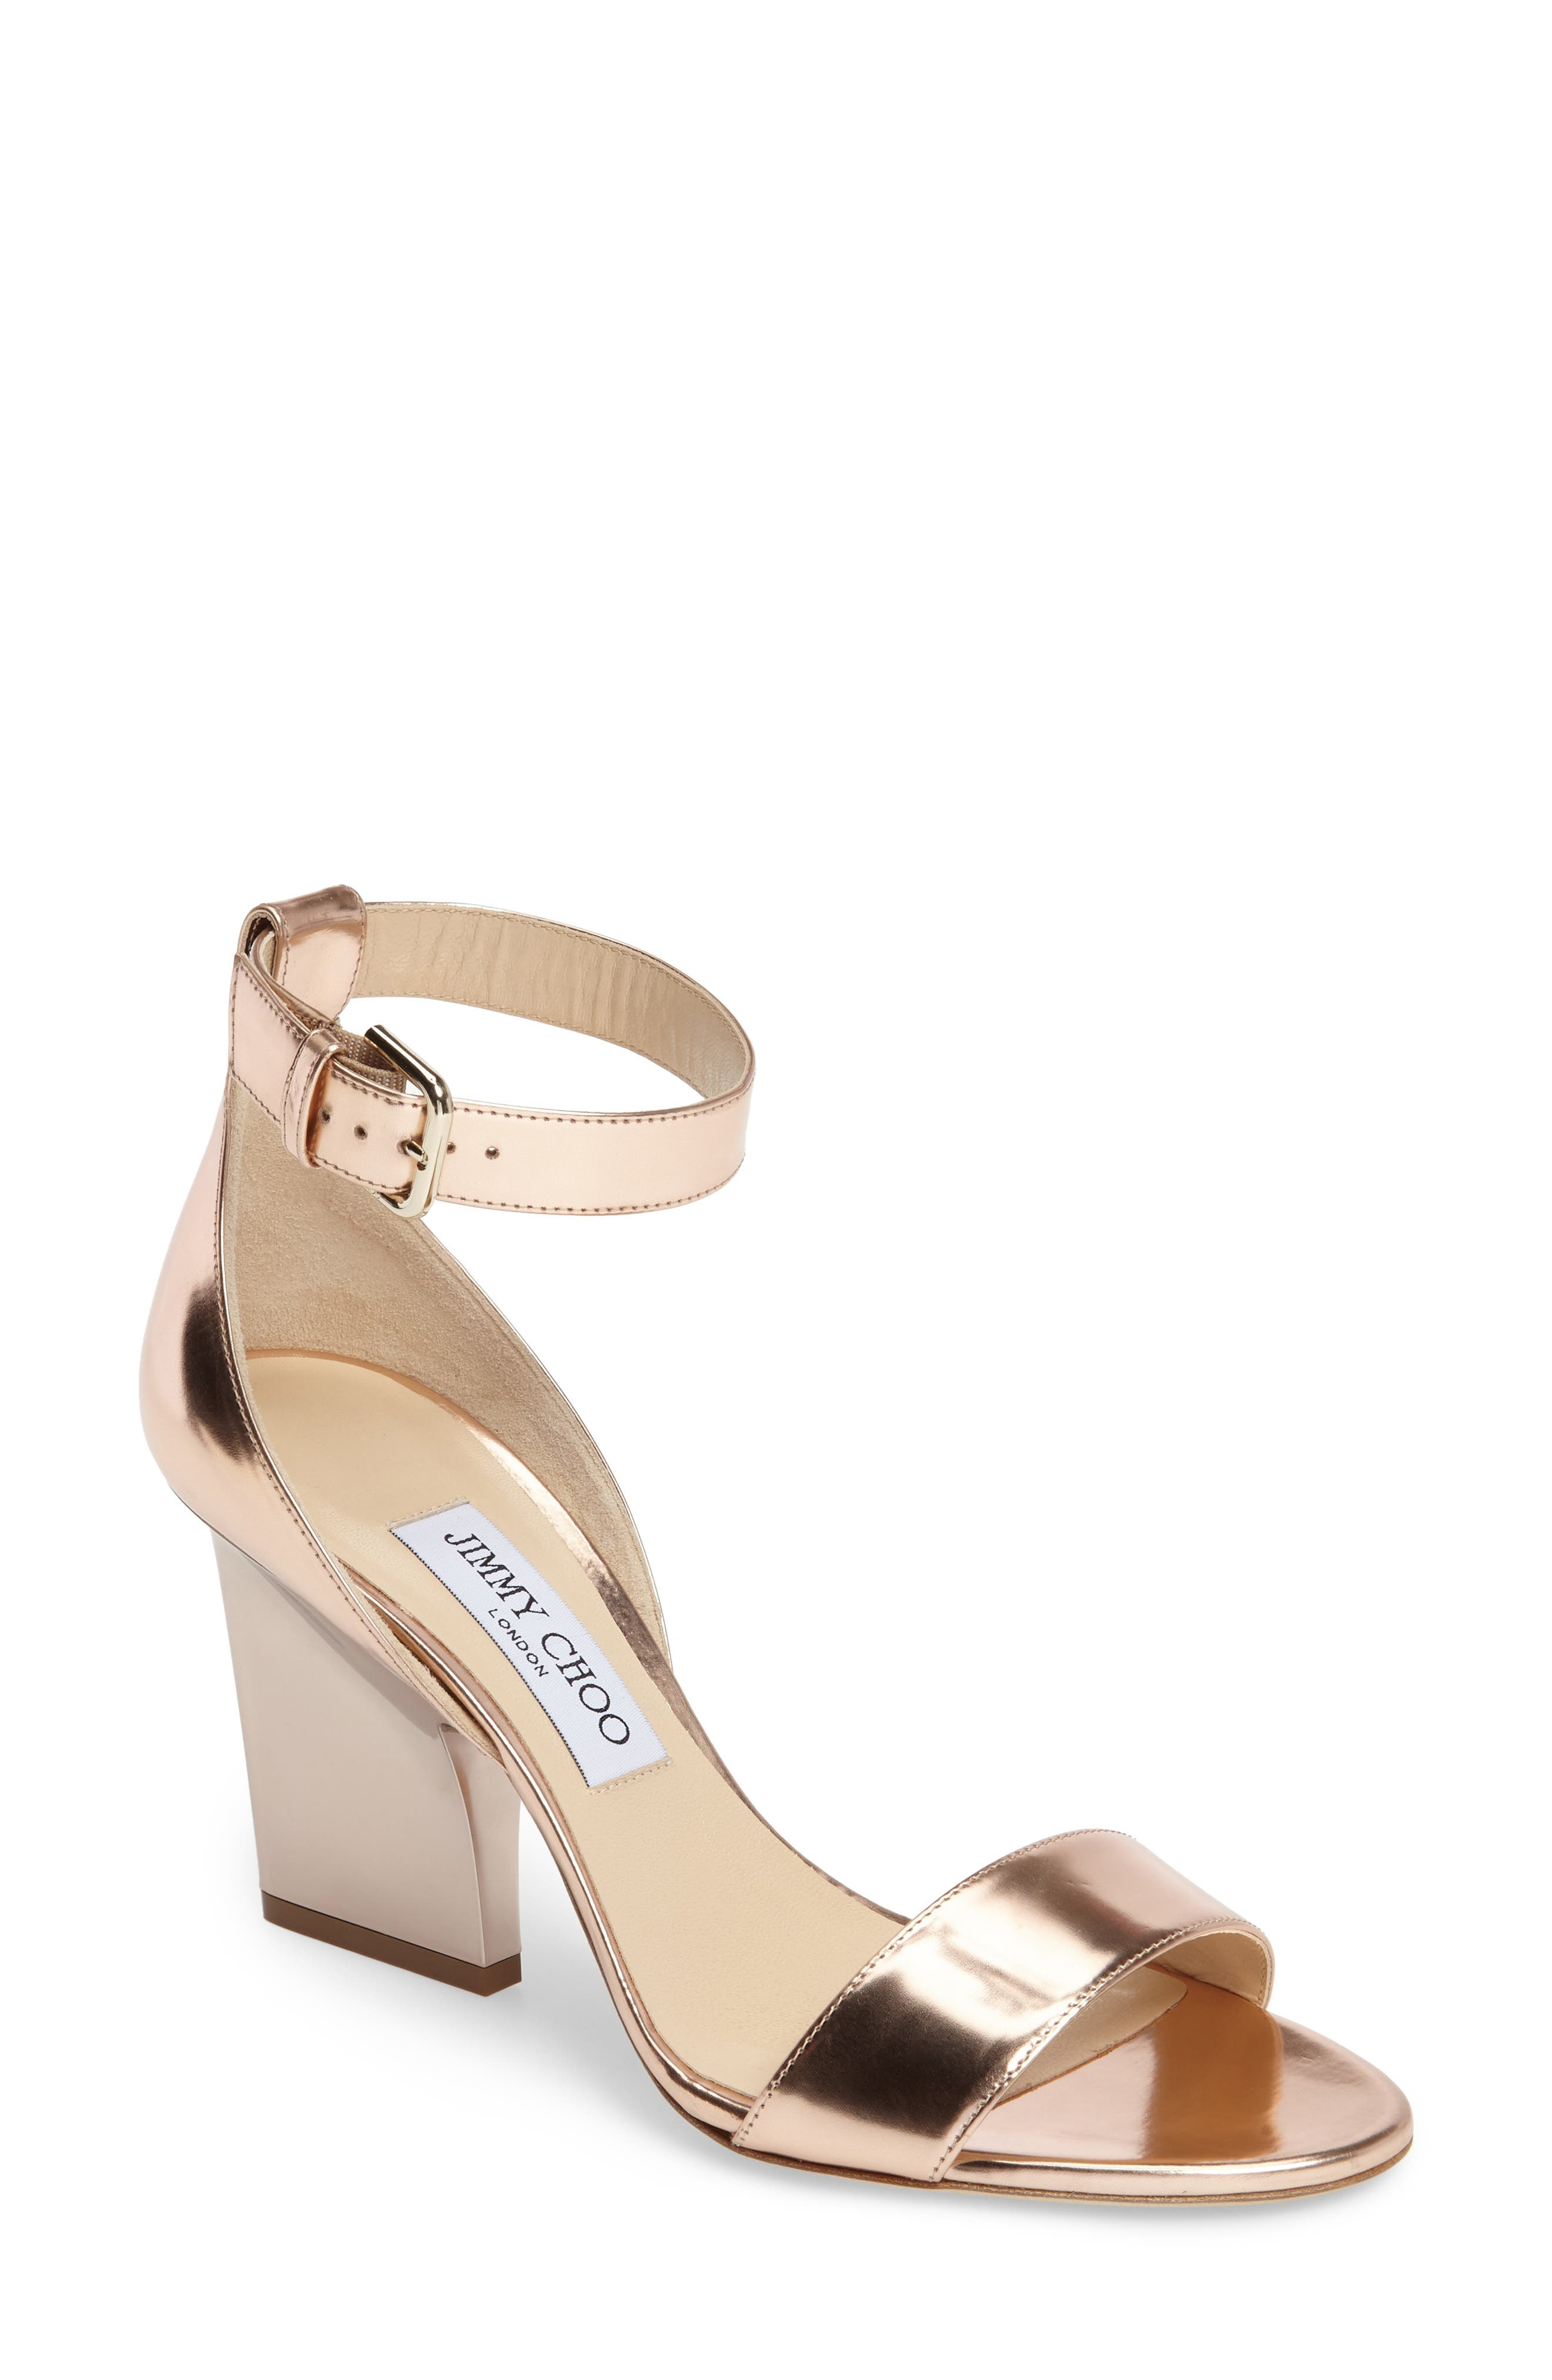 Edina Ankle Strap Sandal,                         Main,                         color, 710